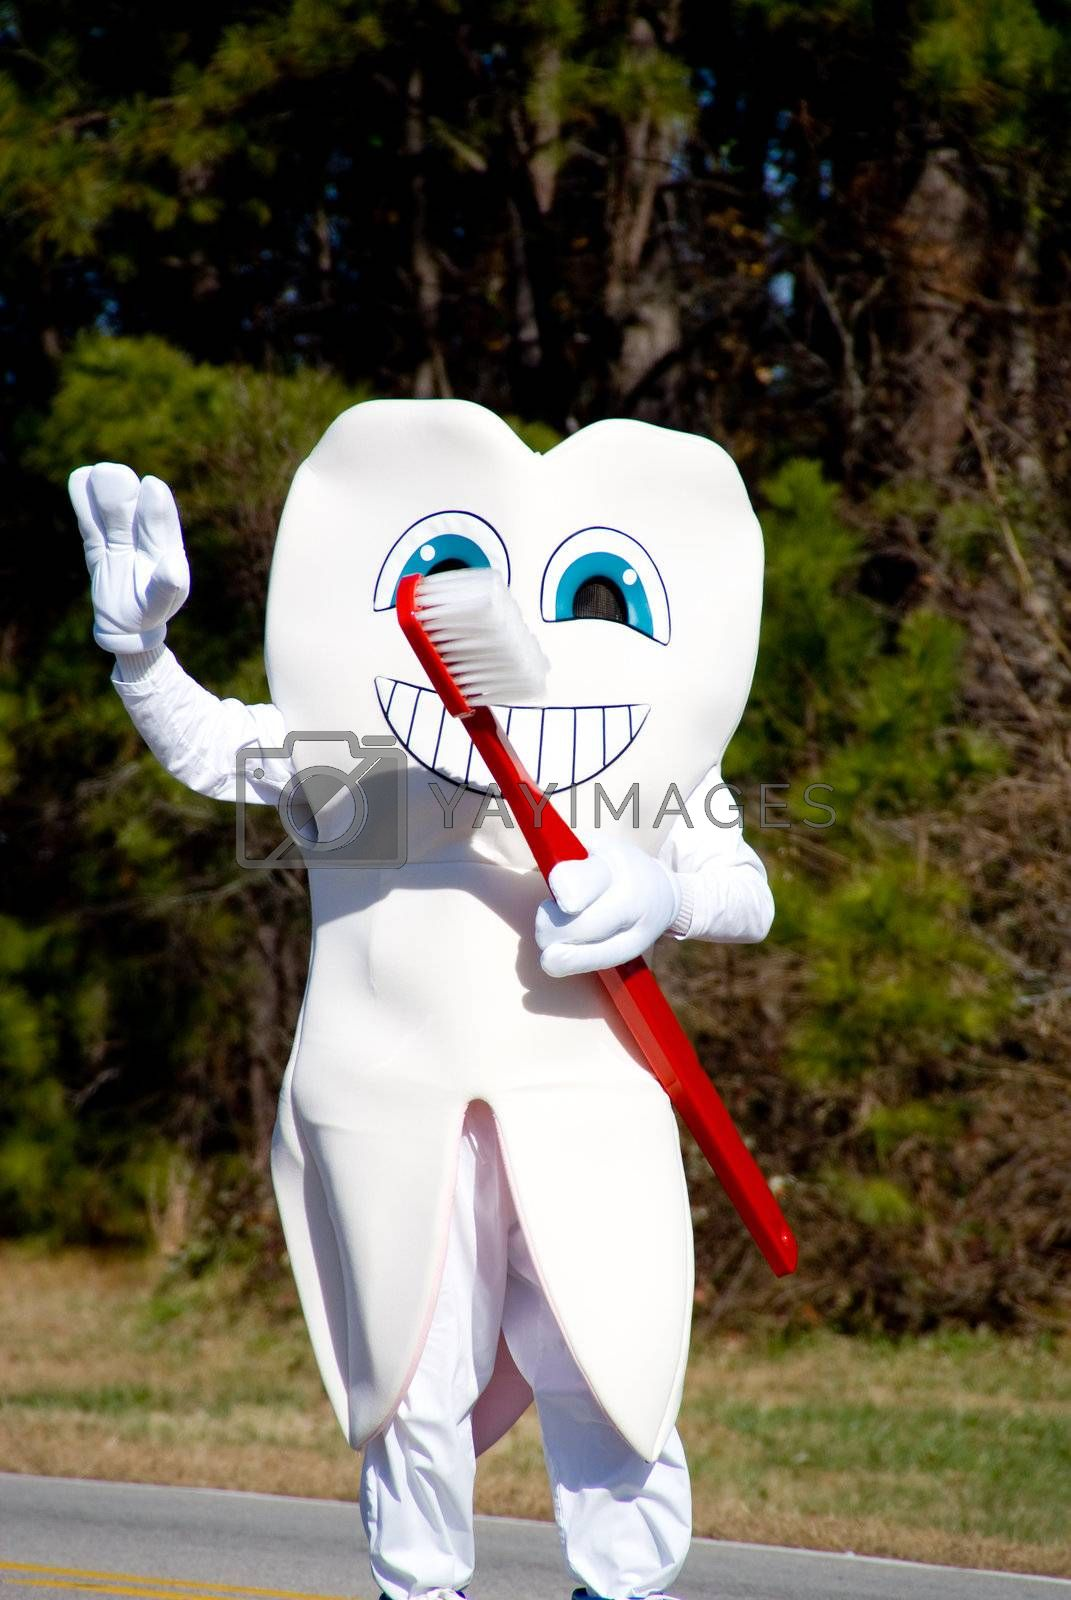 A person in a large tooth costume.